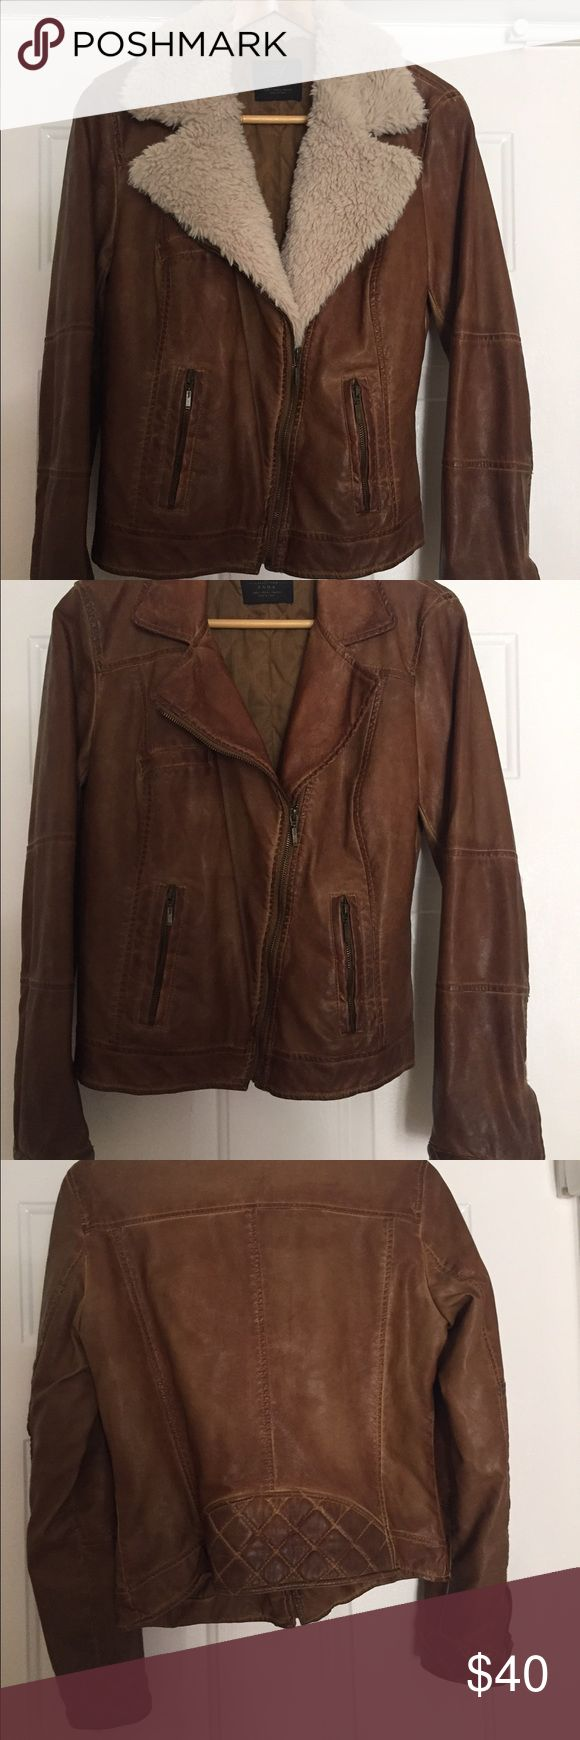 Zara brown leather fur jacket Soft brown leather jacket with removable fur from Zara Trafaluc collection. Very warm winter wear. Soft fur and soft leather . Good condition. Real leather Zara Jackets & Coats